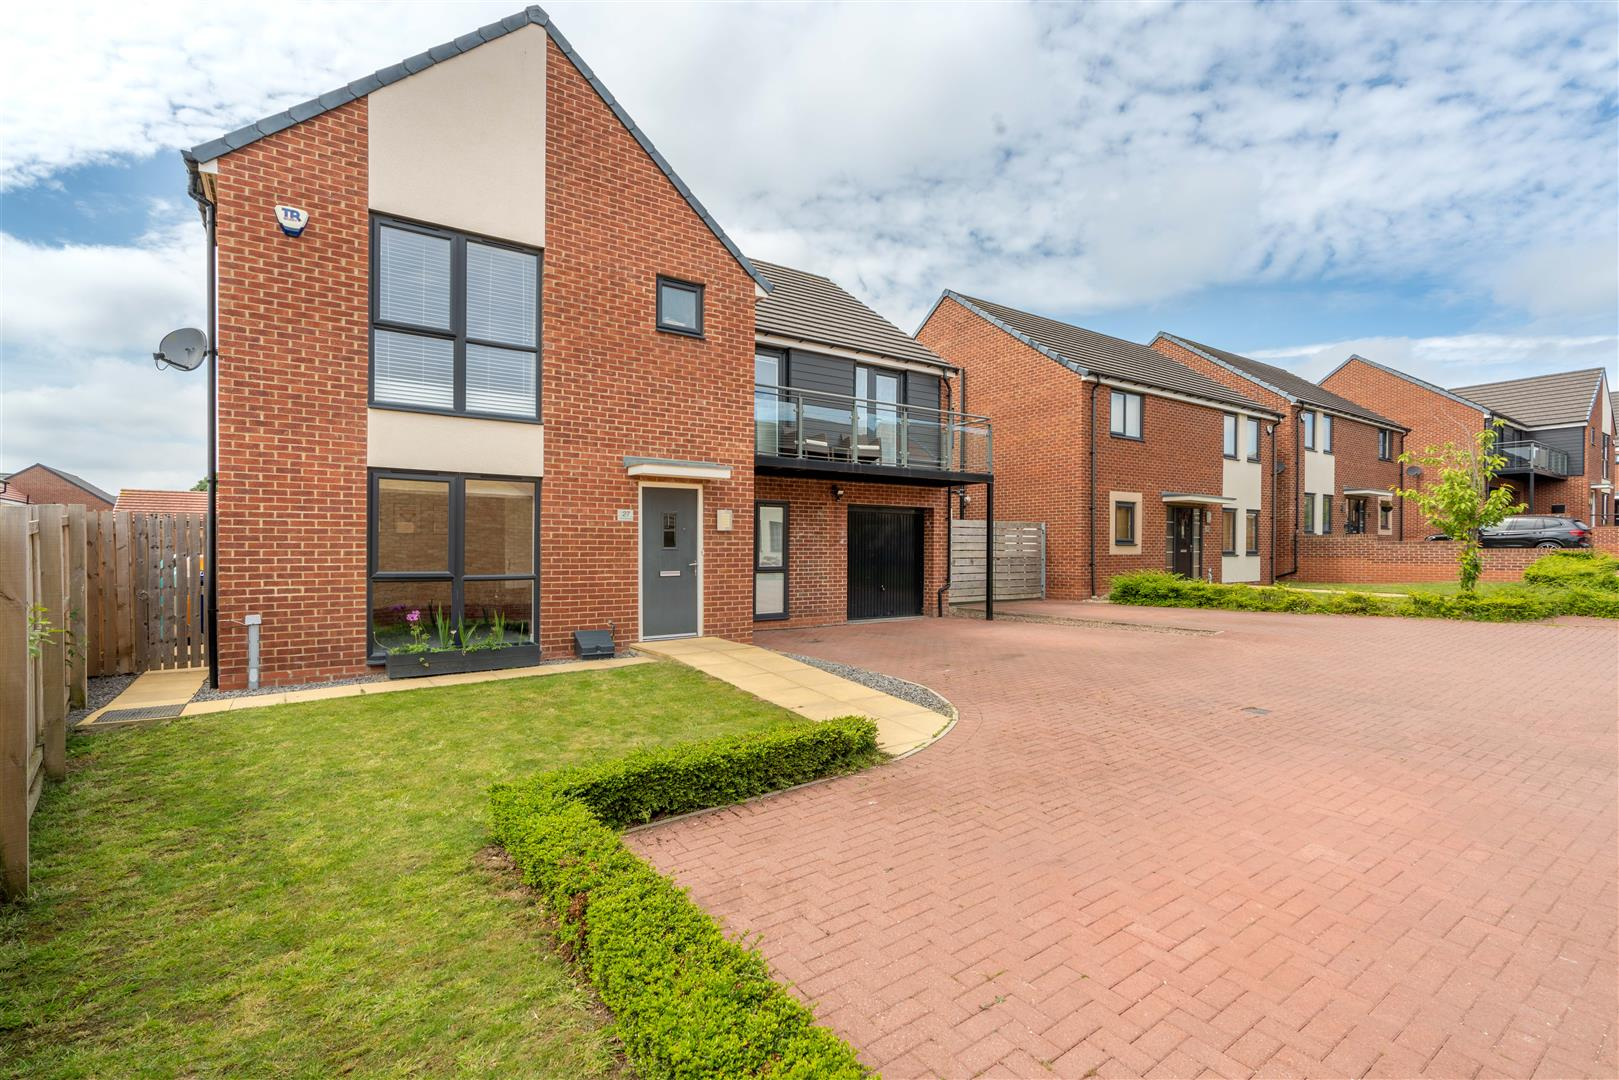 6 bed detached house for sale in Ashwood Close, Newcastle Upon Tyne - Property Image 1